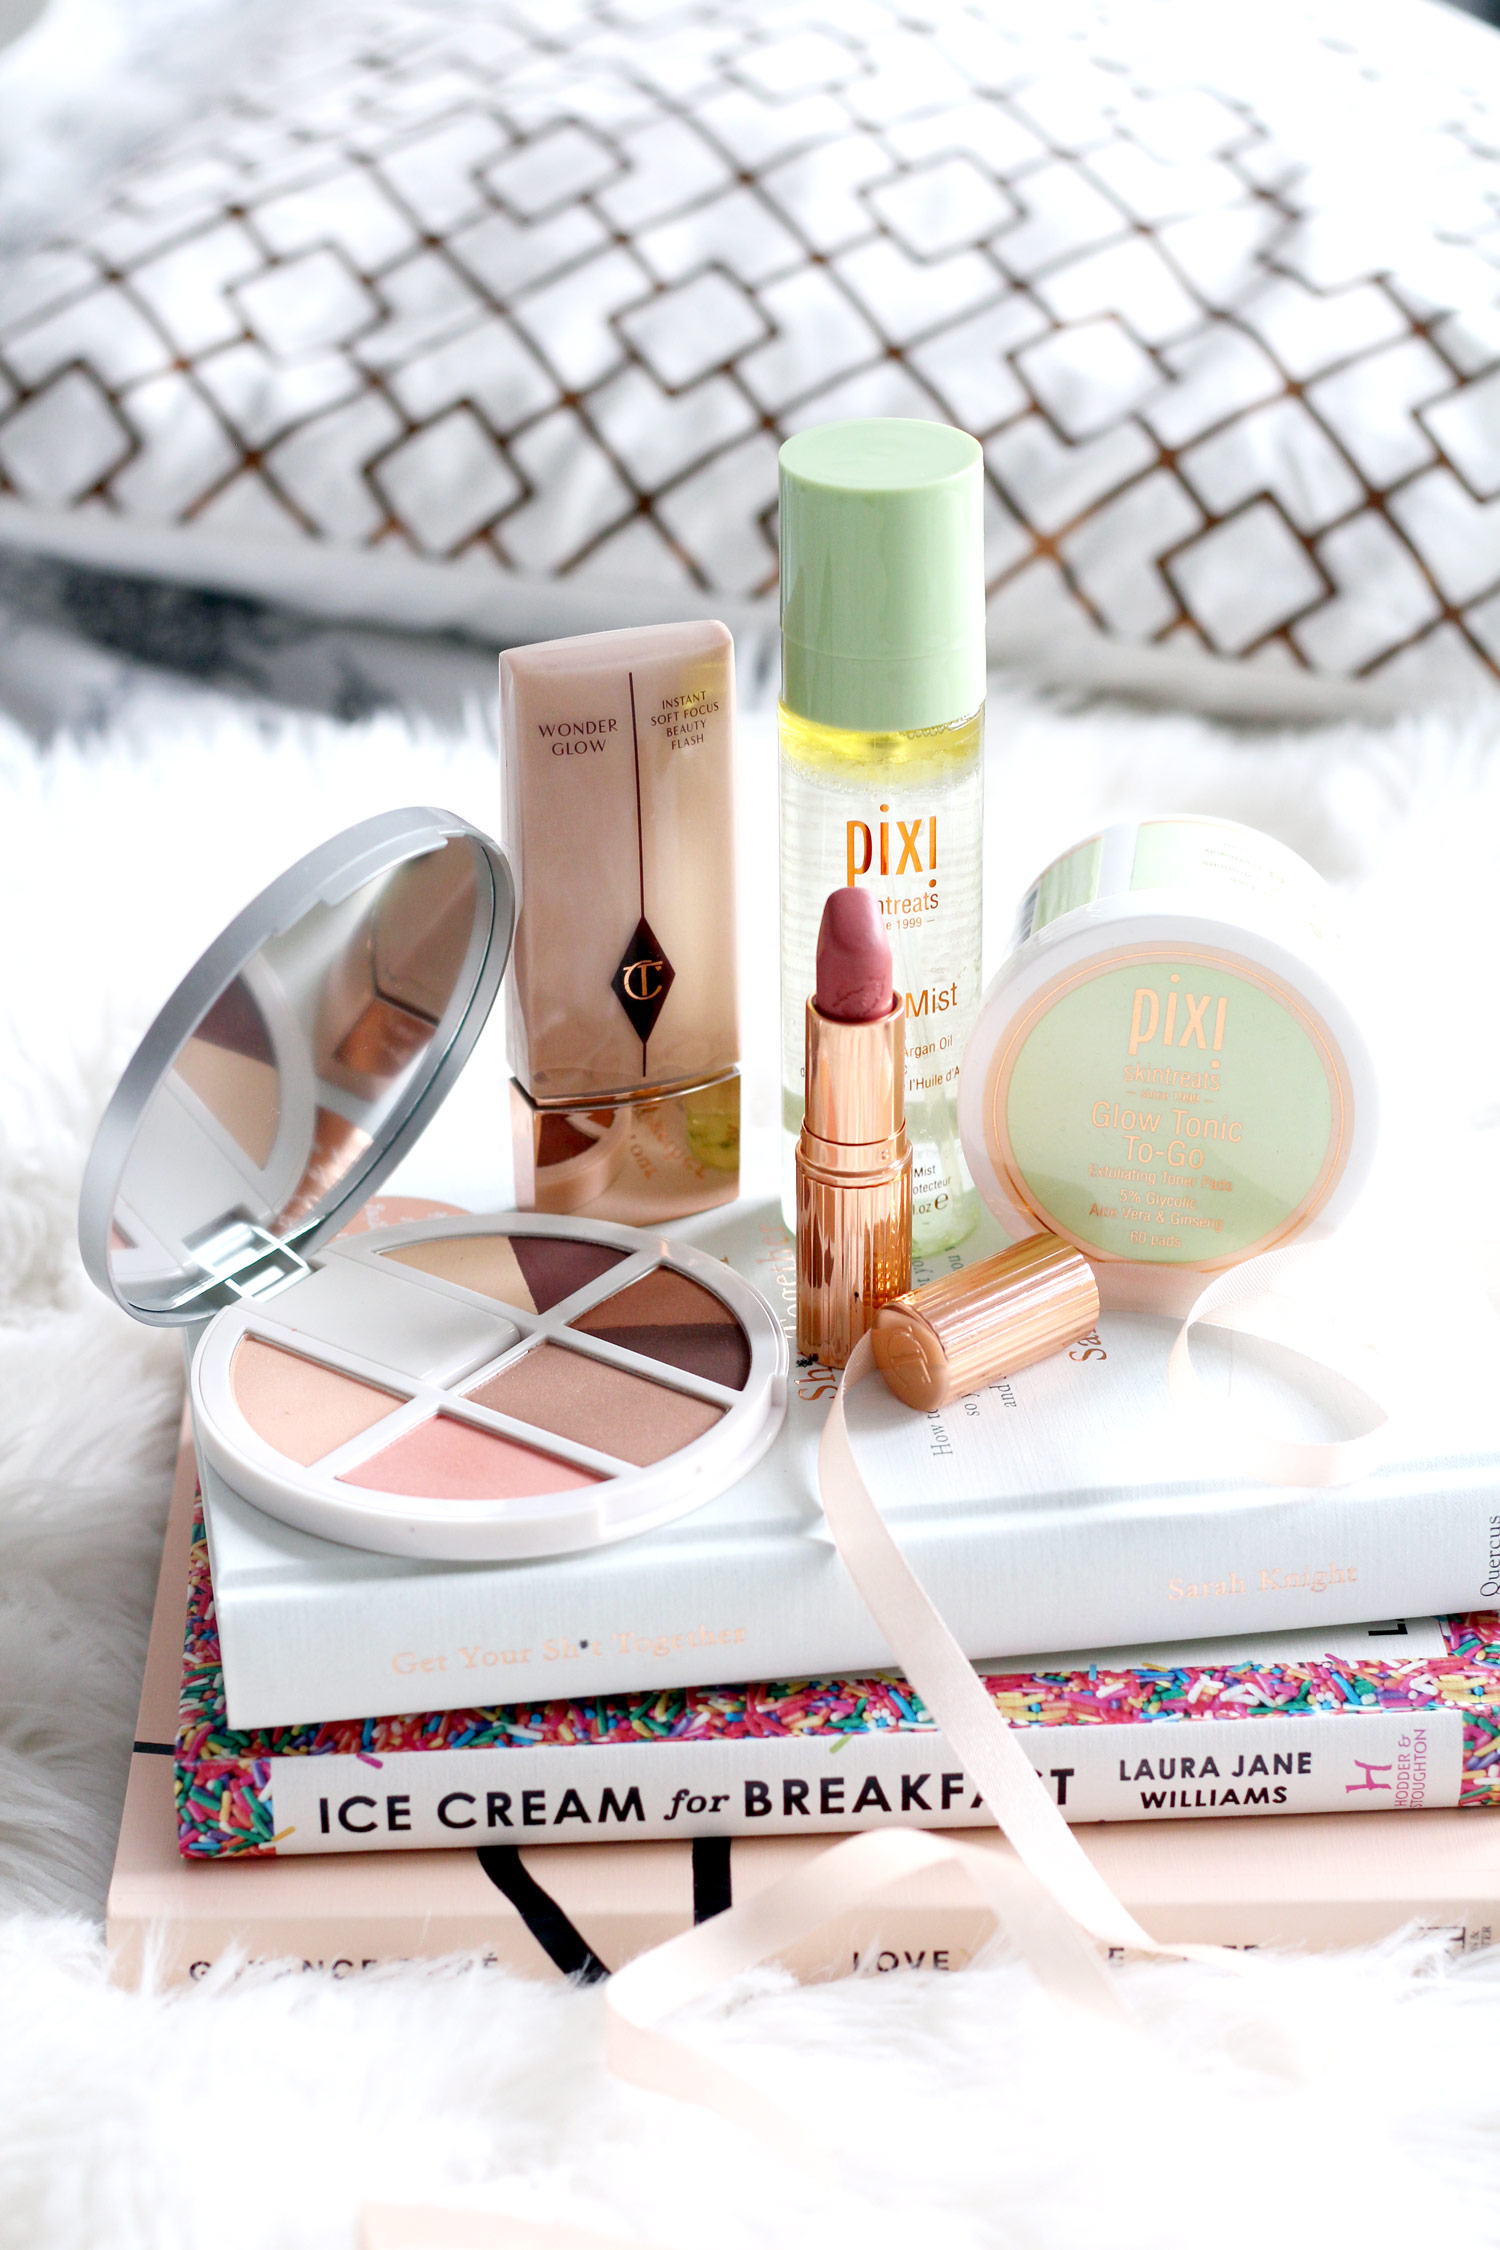 products-for-a-glow-pixi-glow-charlotte-tilbury